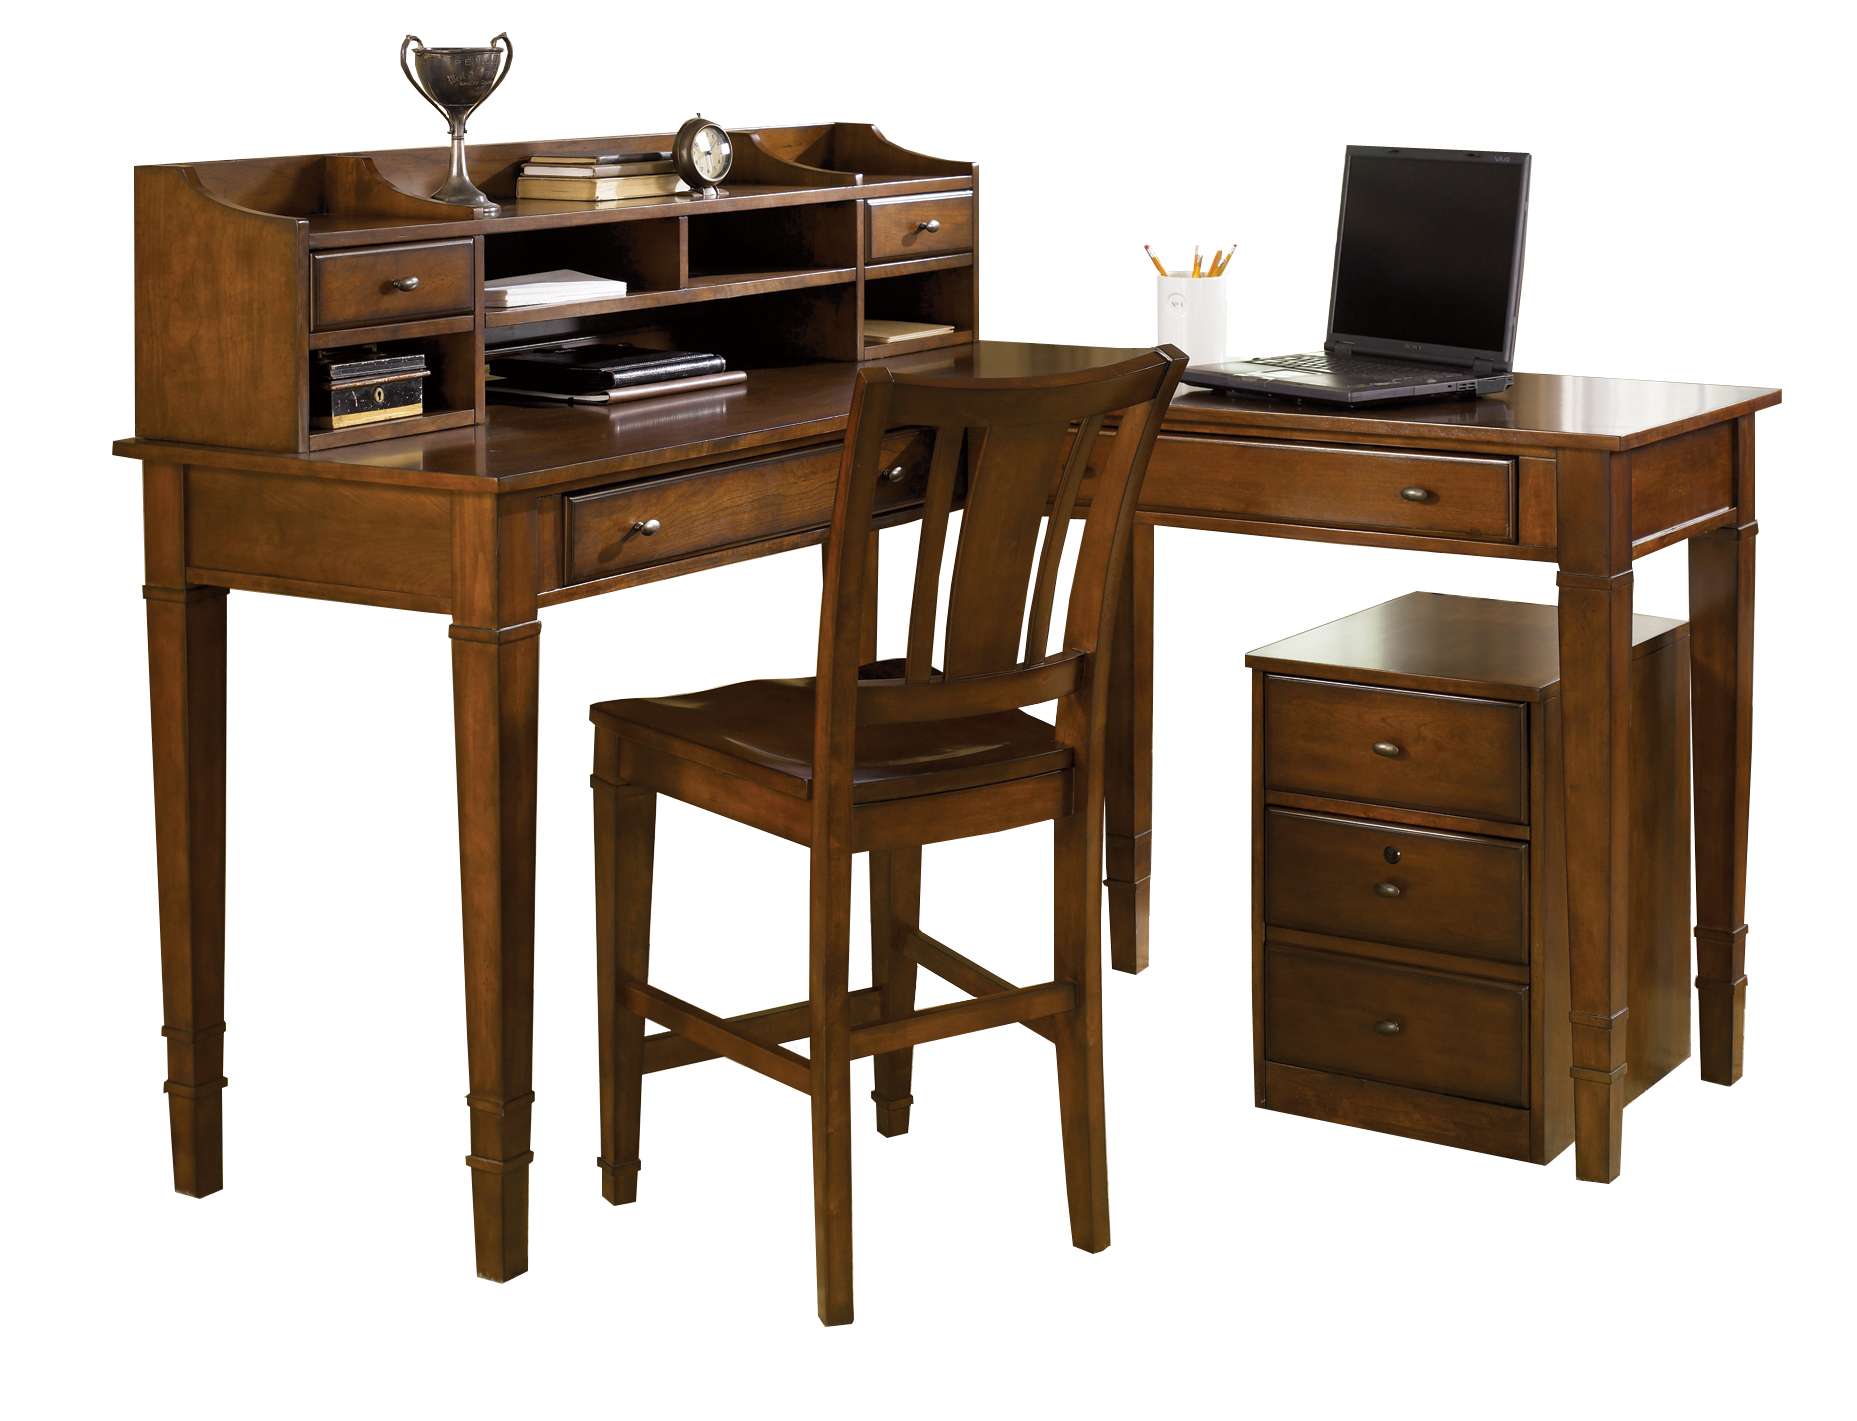 How Tall Are Bookshelves How Tall Is A Writing Desk How To Antique Wood Coffee Table How To